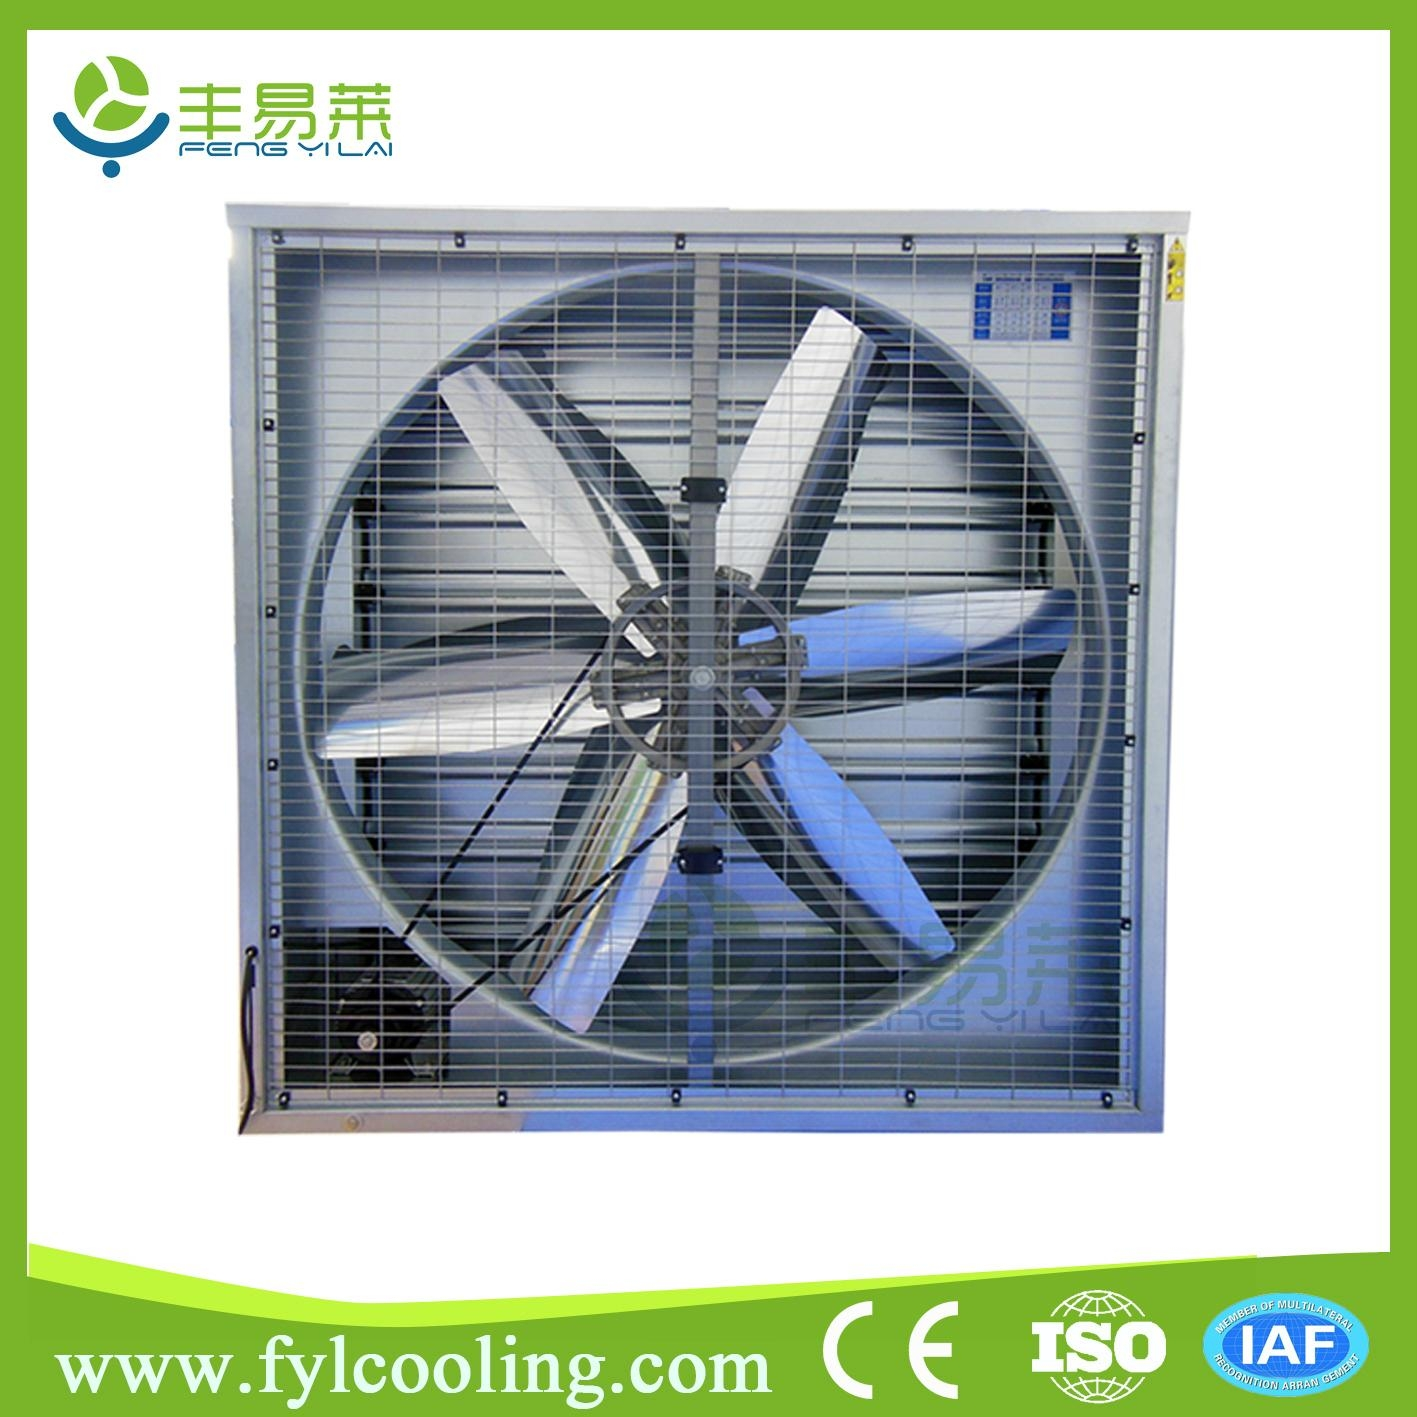 Industrial Wall Exhaust Fan : Cfm thermostat controlled smoking room industrial